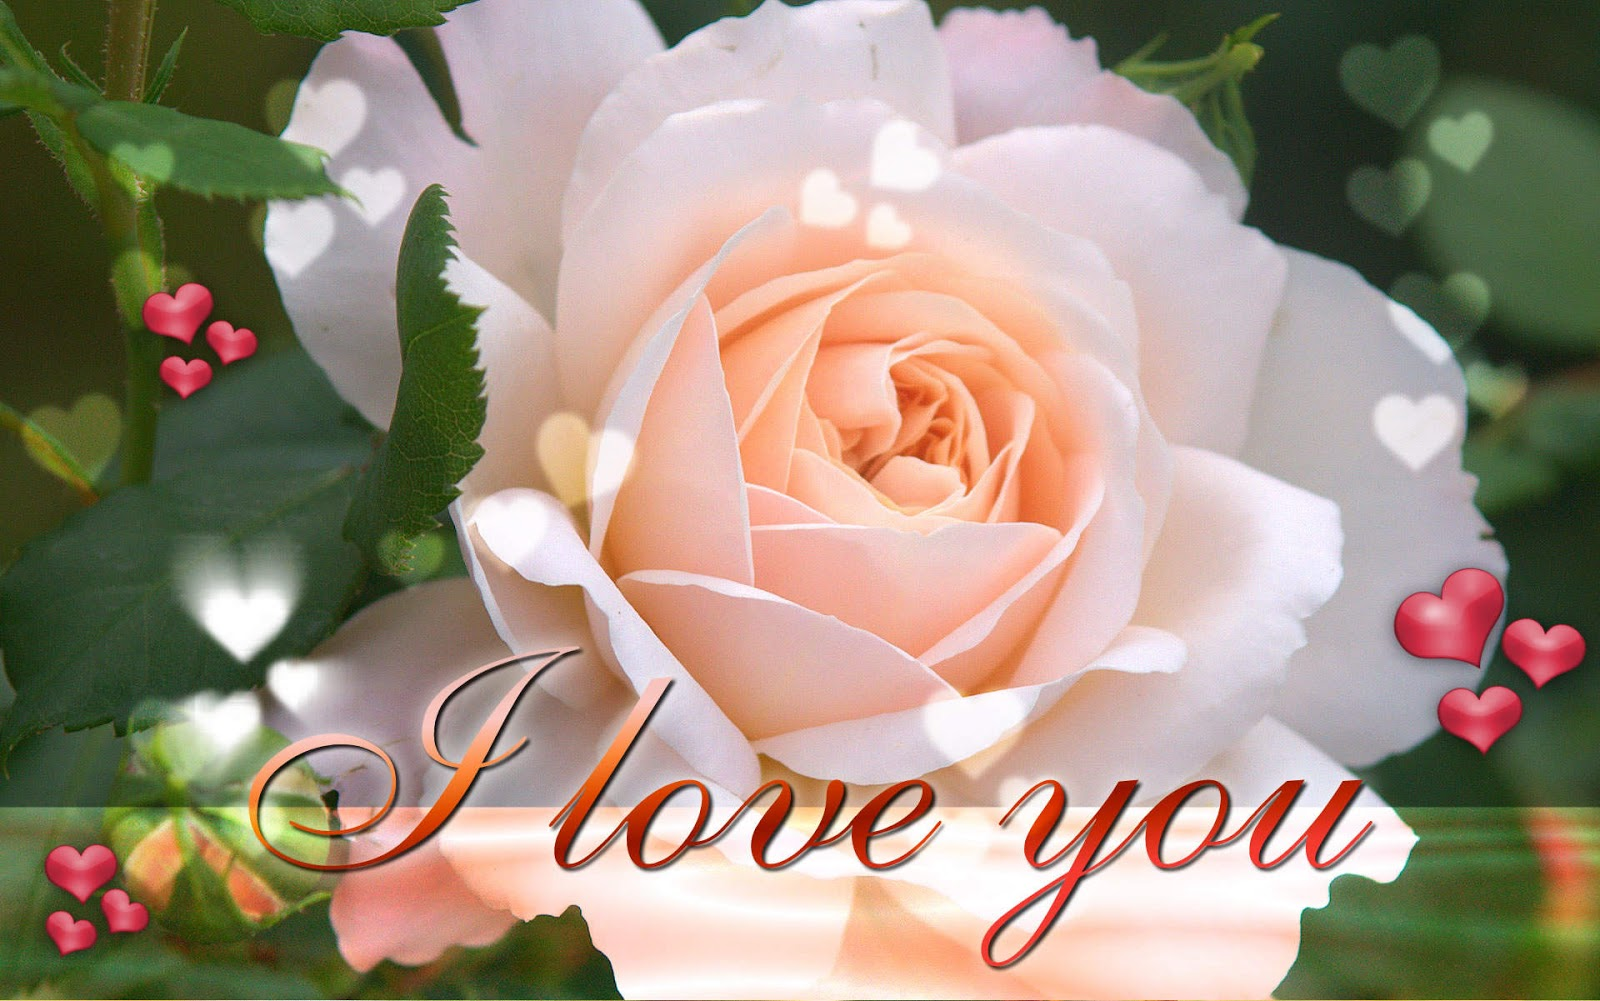 Hd wallpaper i love you - I Love You Wallpaper I Love You Wallpapers